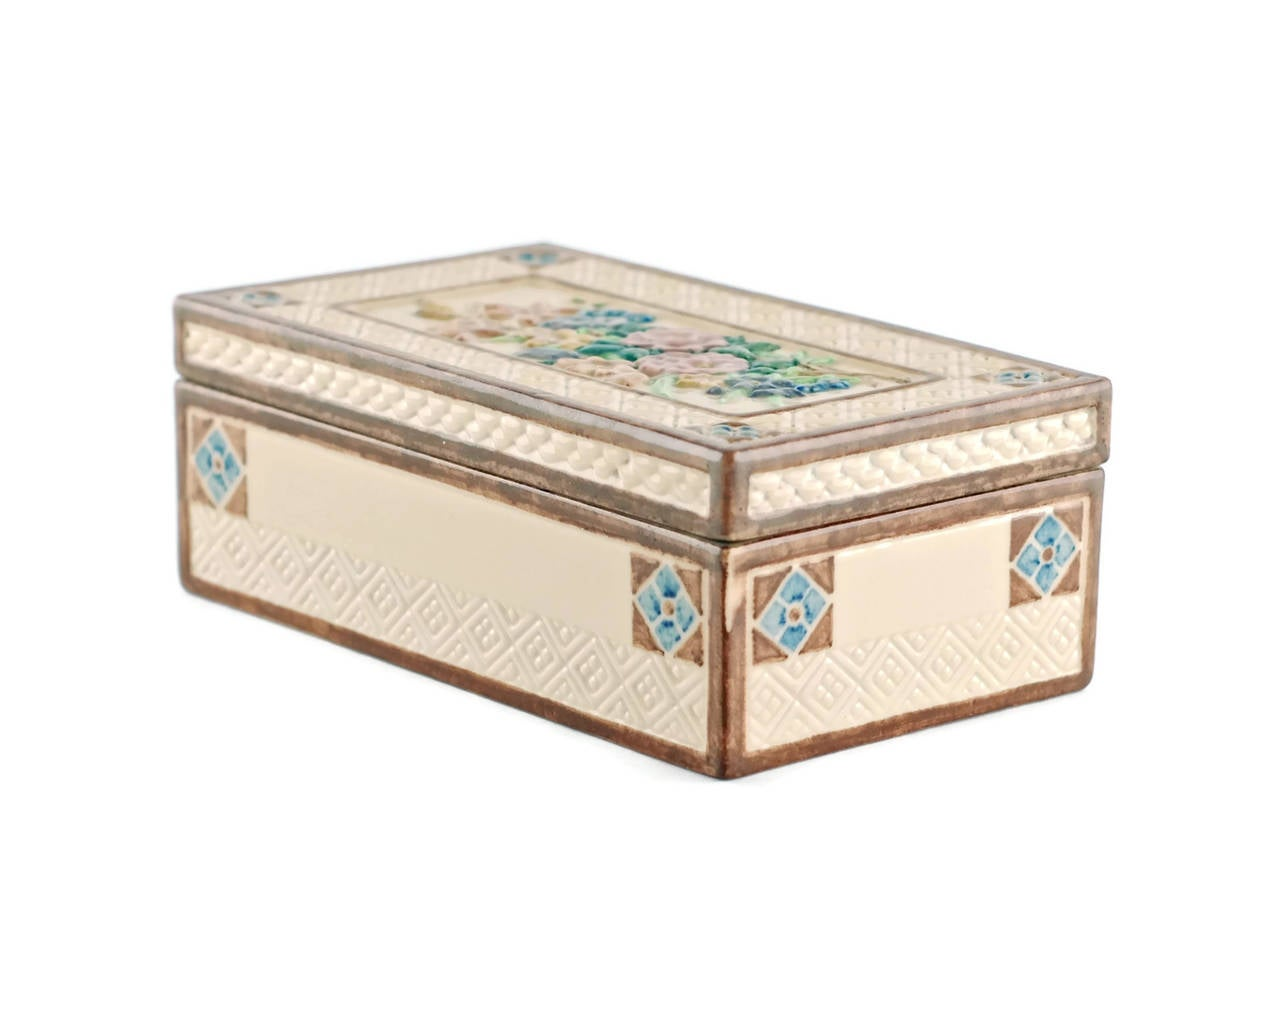 Hand-Painted Signed Sara Sax Rookwood Pottery Lidded Rectangular Box For Sale